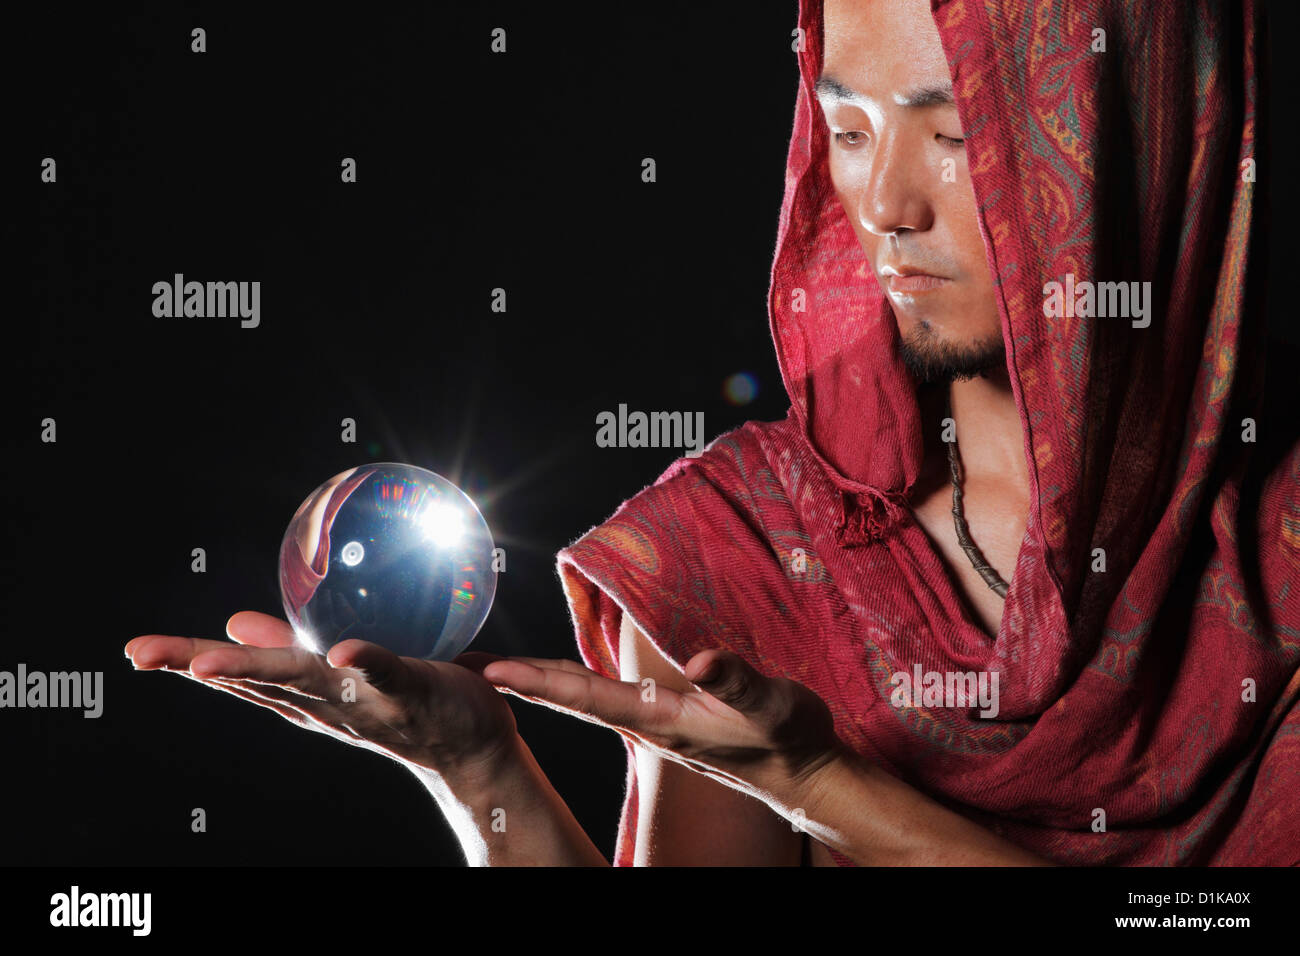 Fortune teller holding a crystal ball - Stock Image